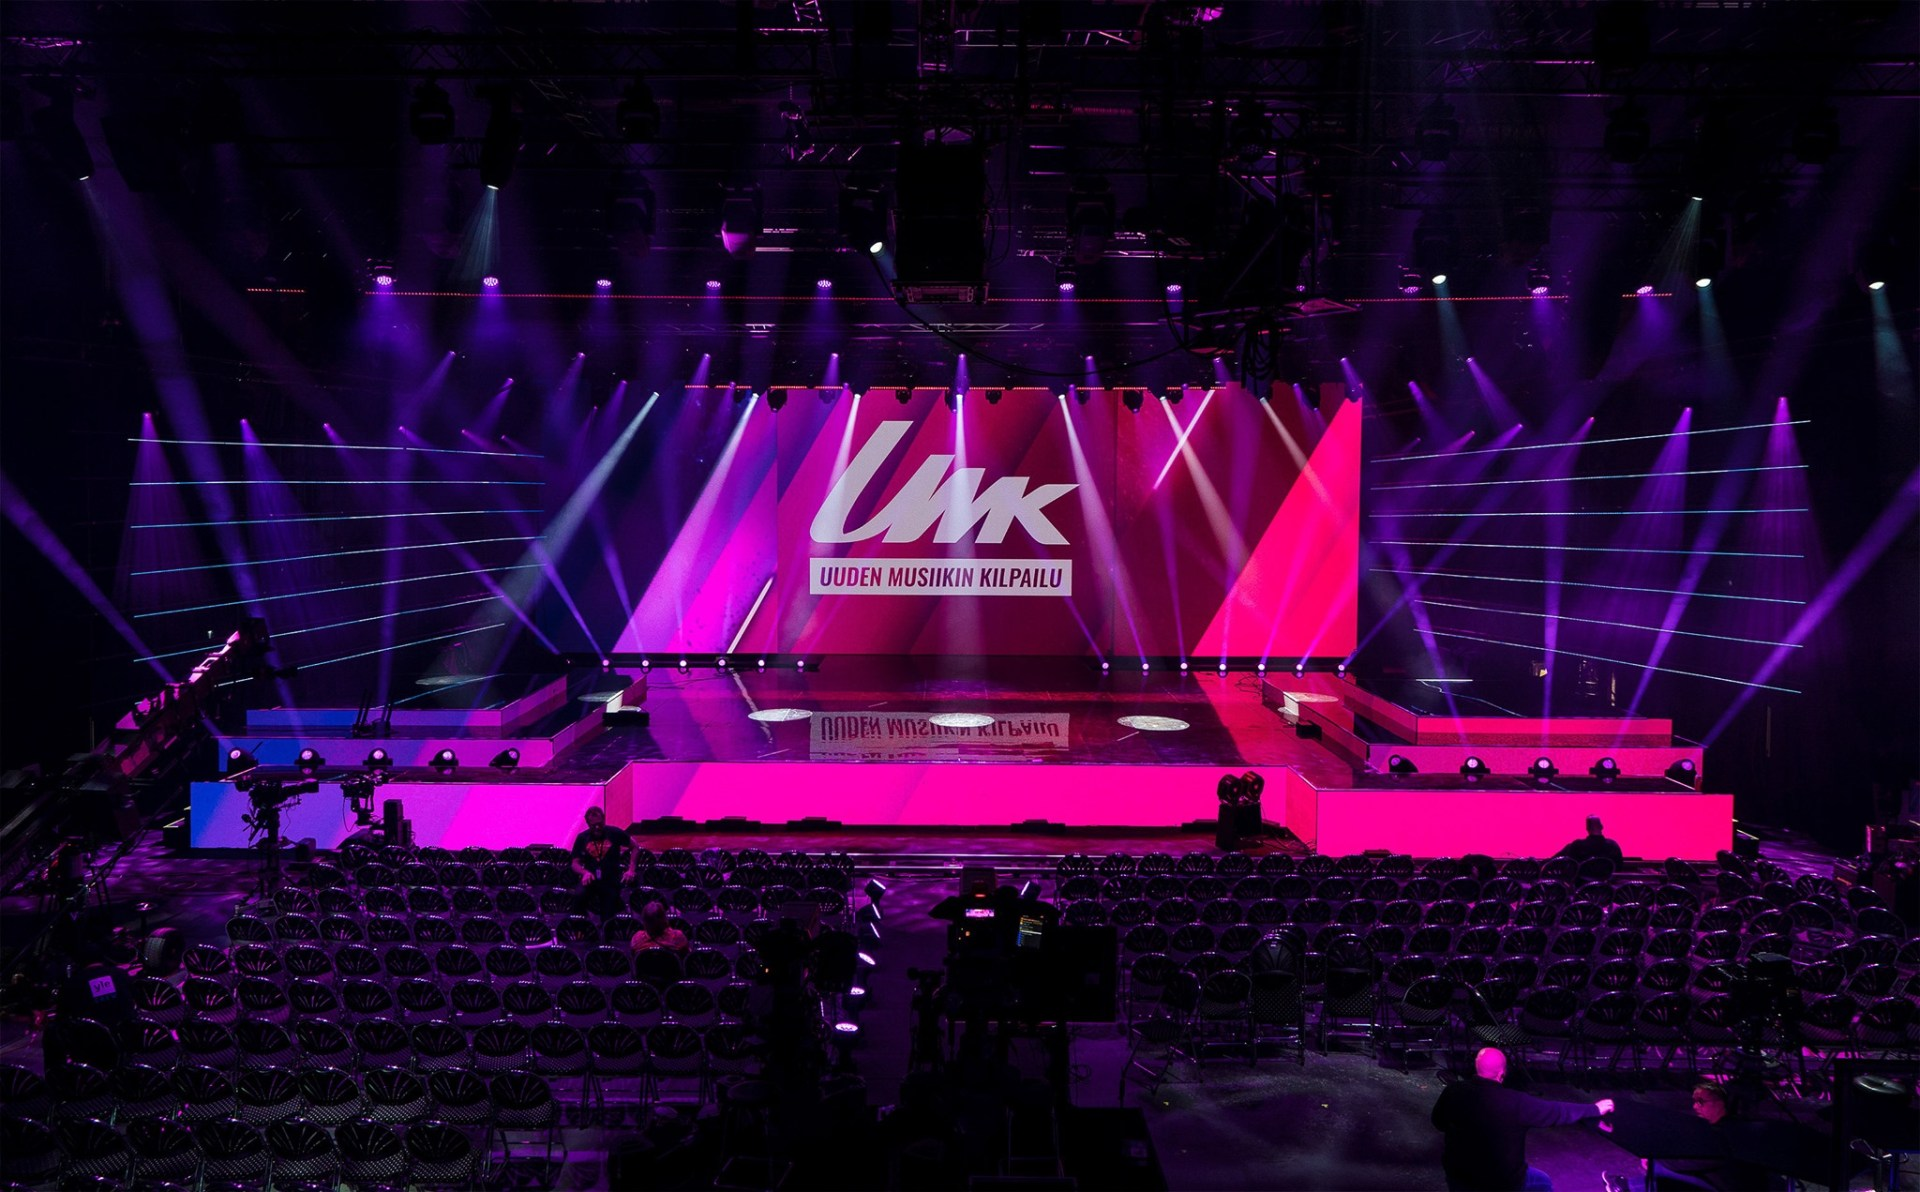 Finland 2021 🇫🇮 YLE gives information for UMK 2021 as submissions kick  off in June - OIKOTIMES